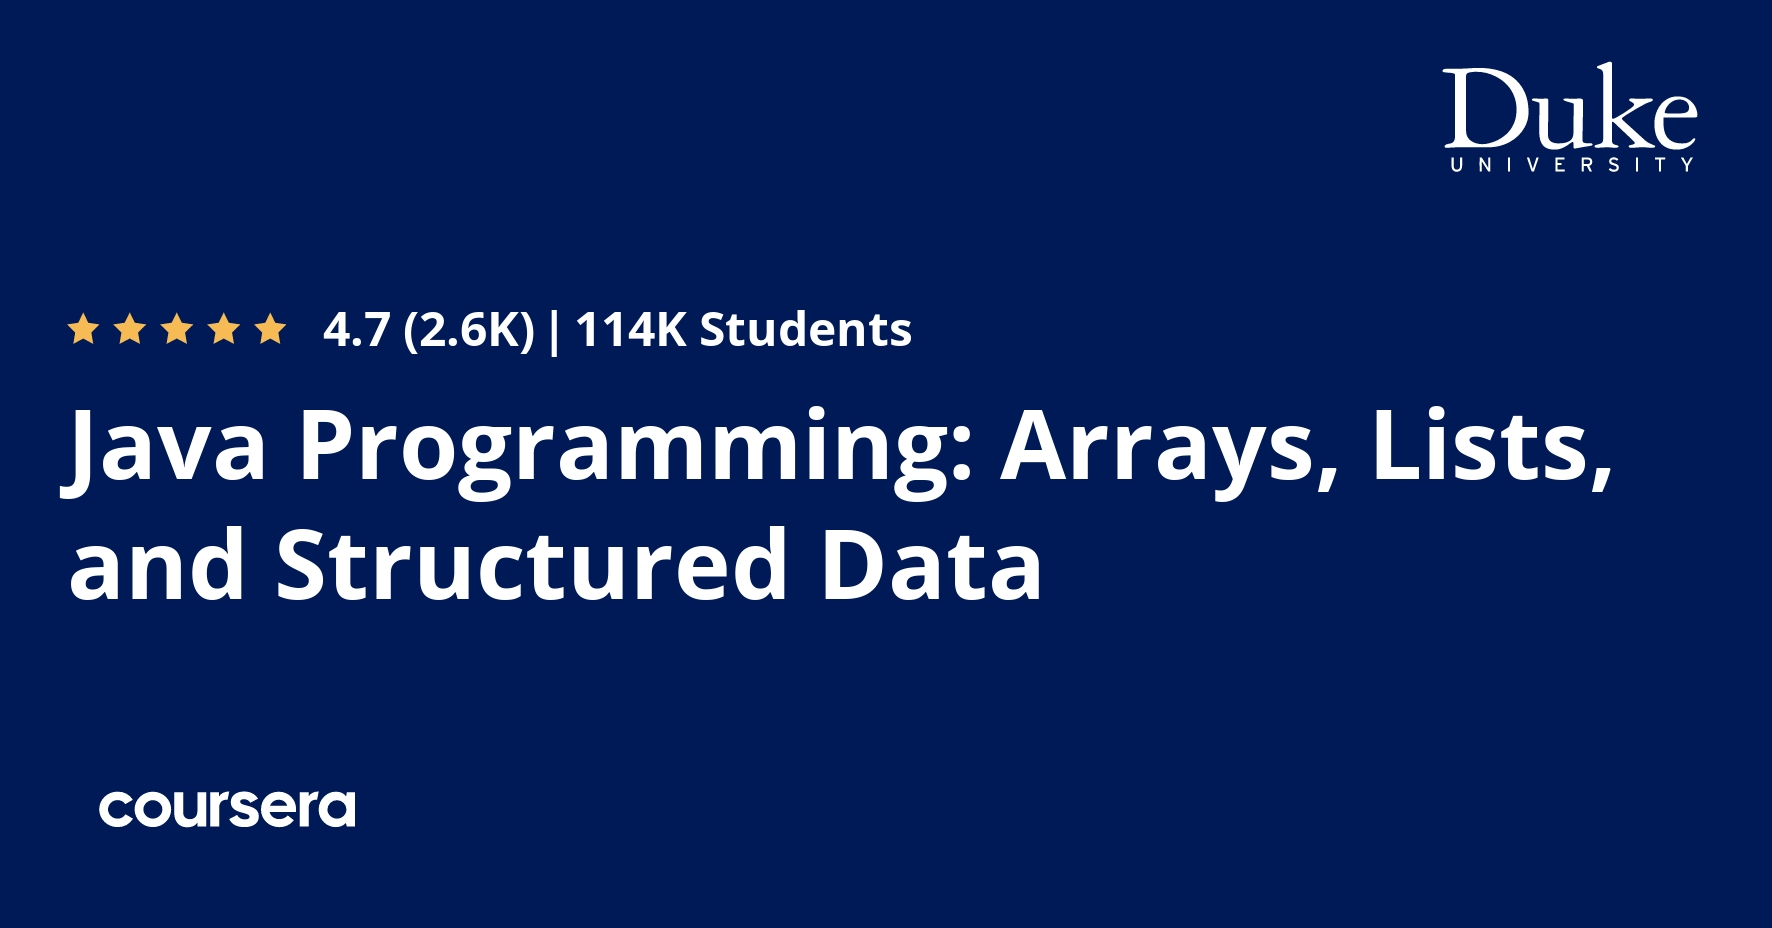 Java Programming: Arrays, Lists, and Structured Data